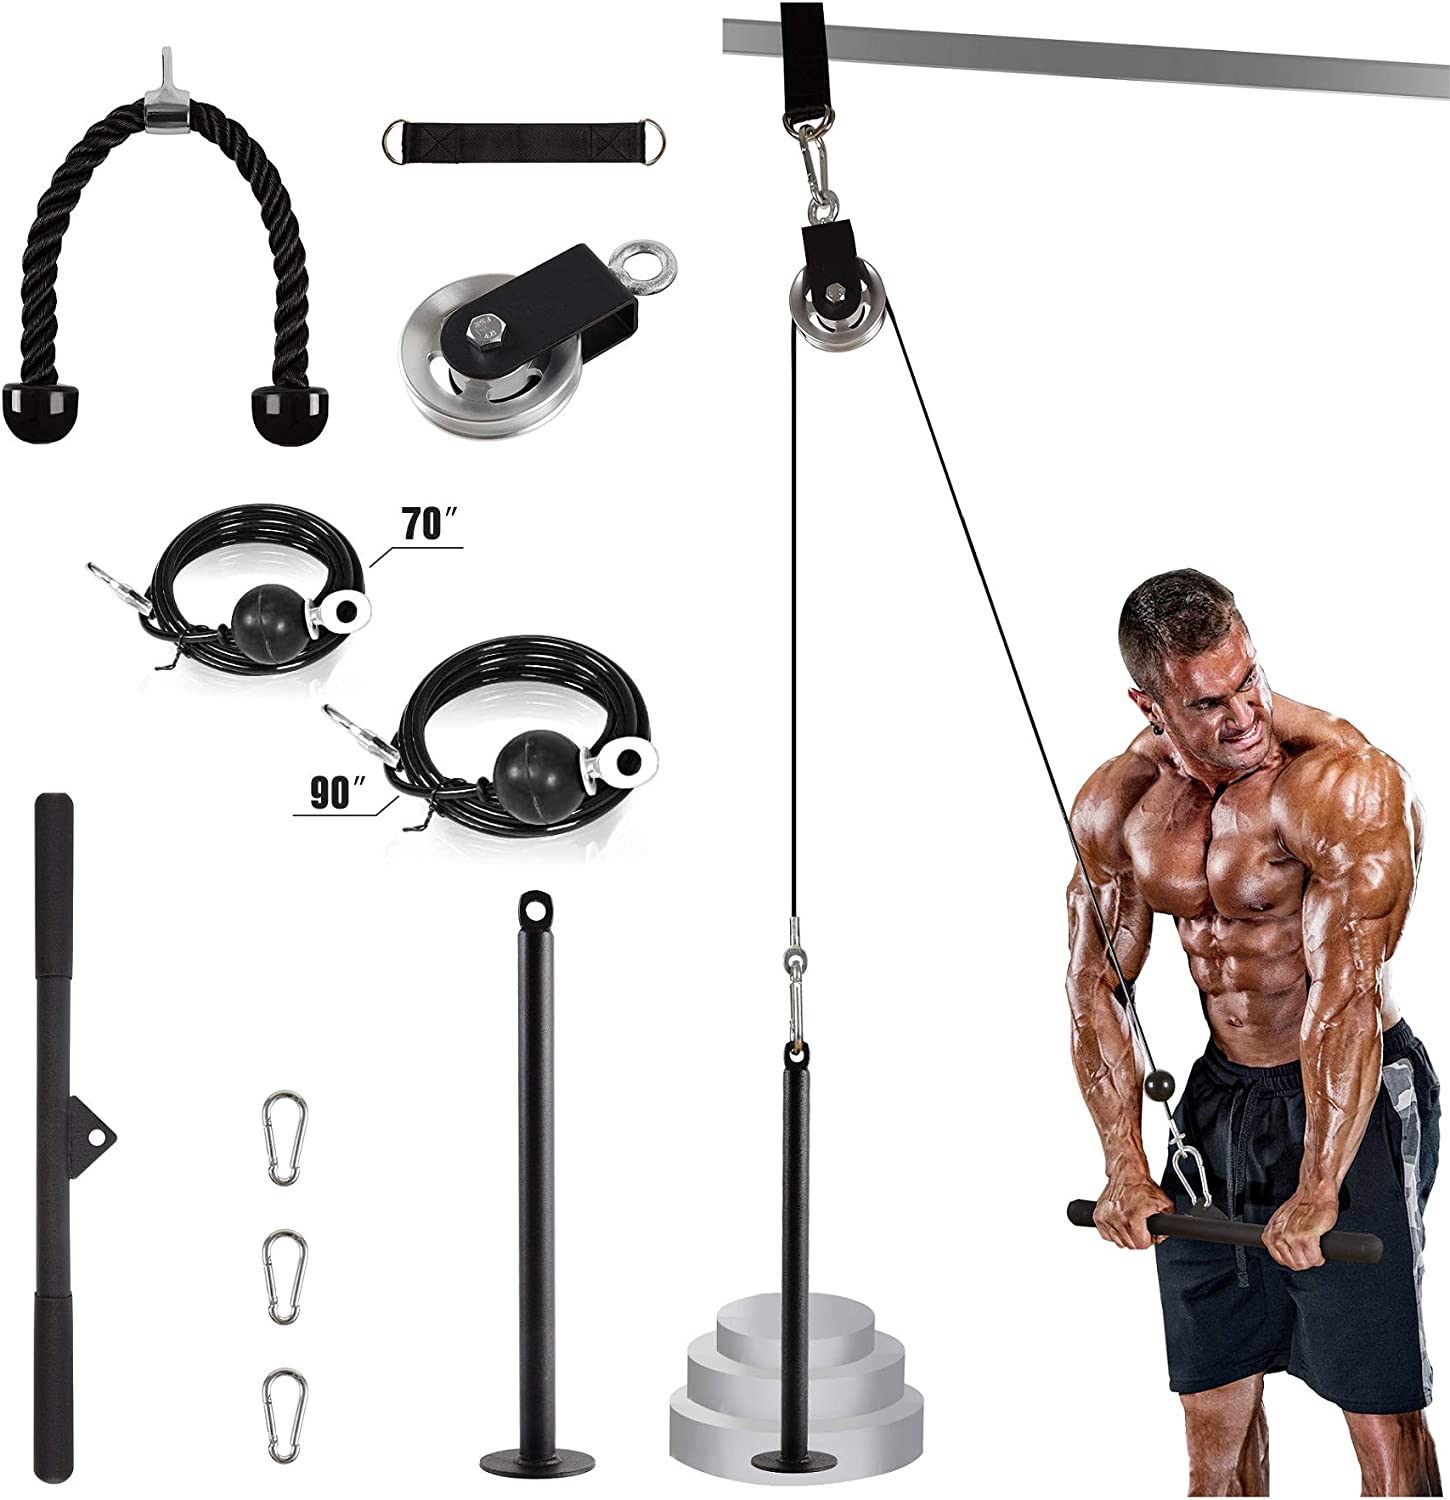 Home Gym Fitness Biceps Triceps DIY Loading Pin Lifting Rope Machine Workout US